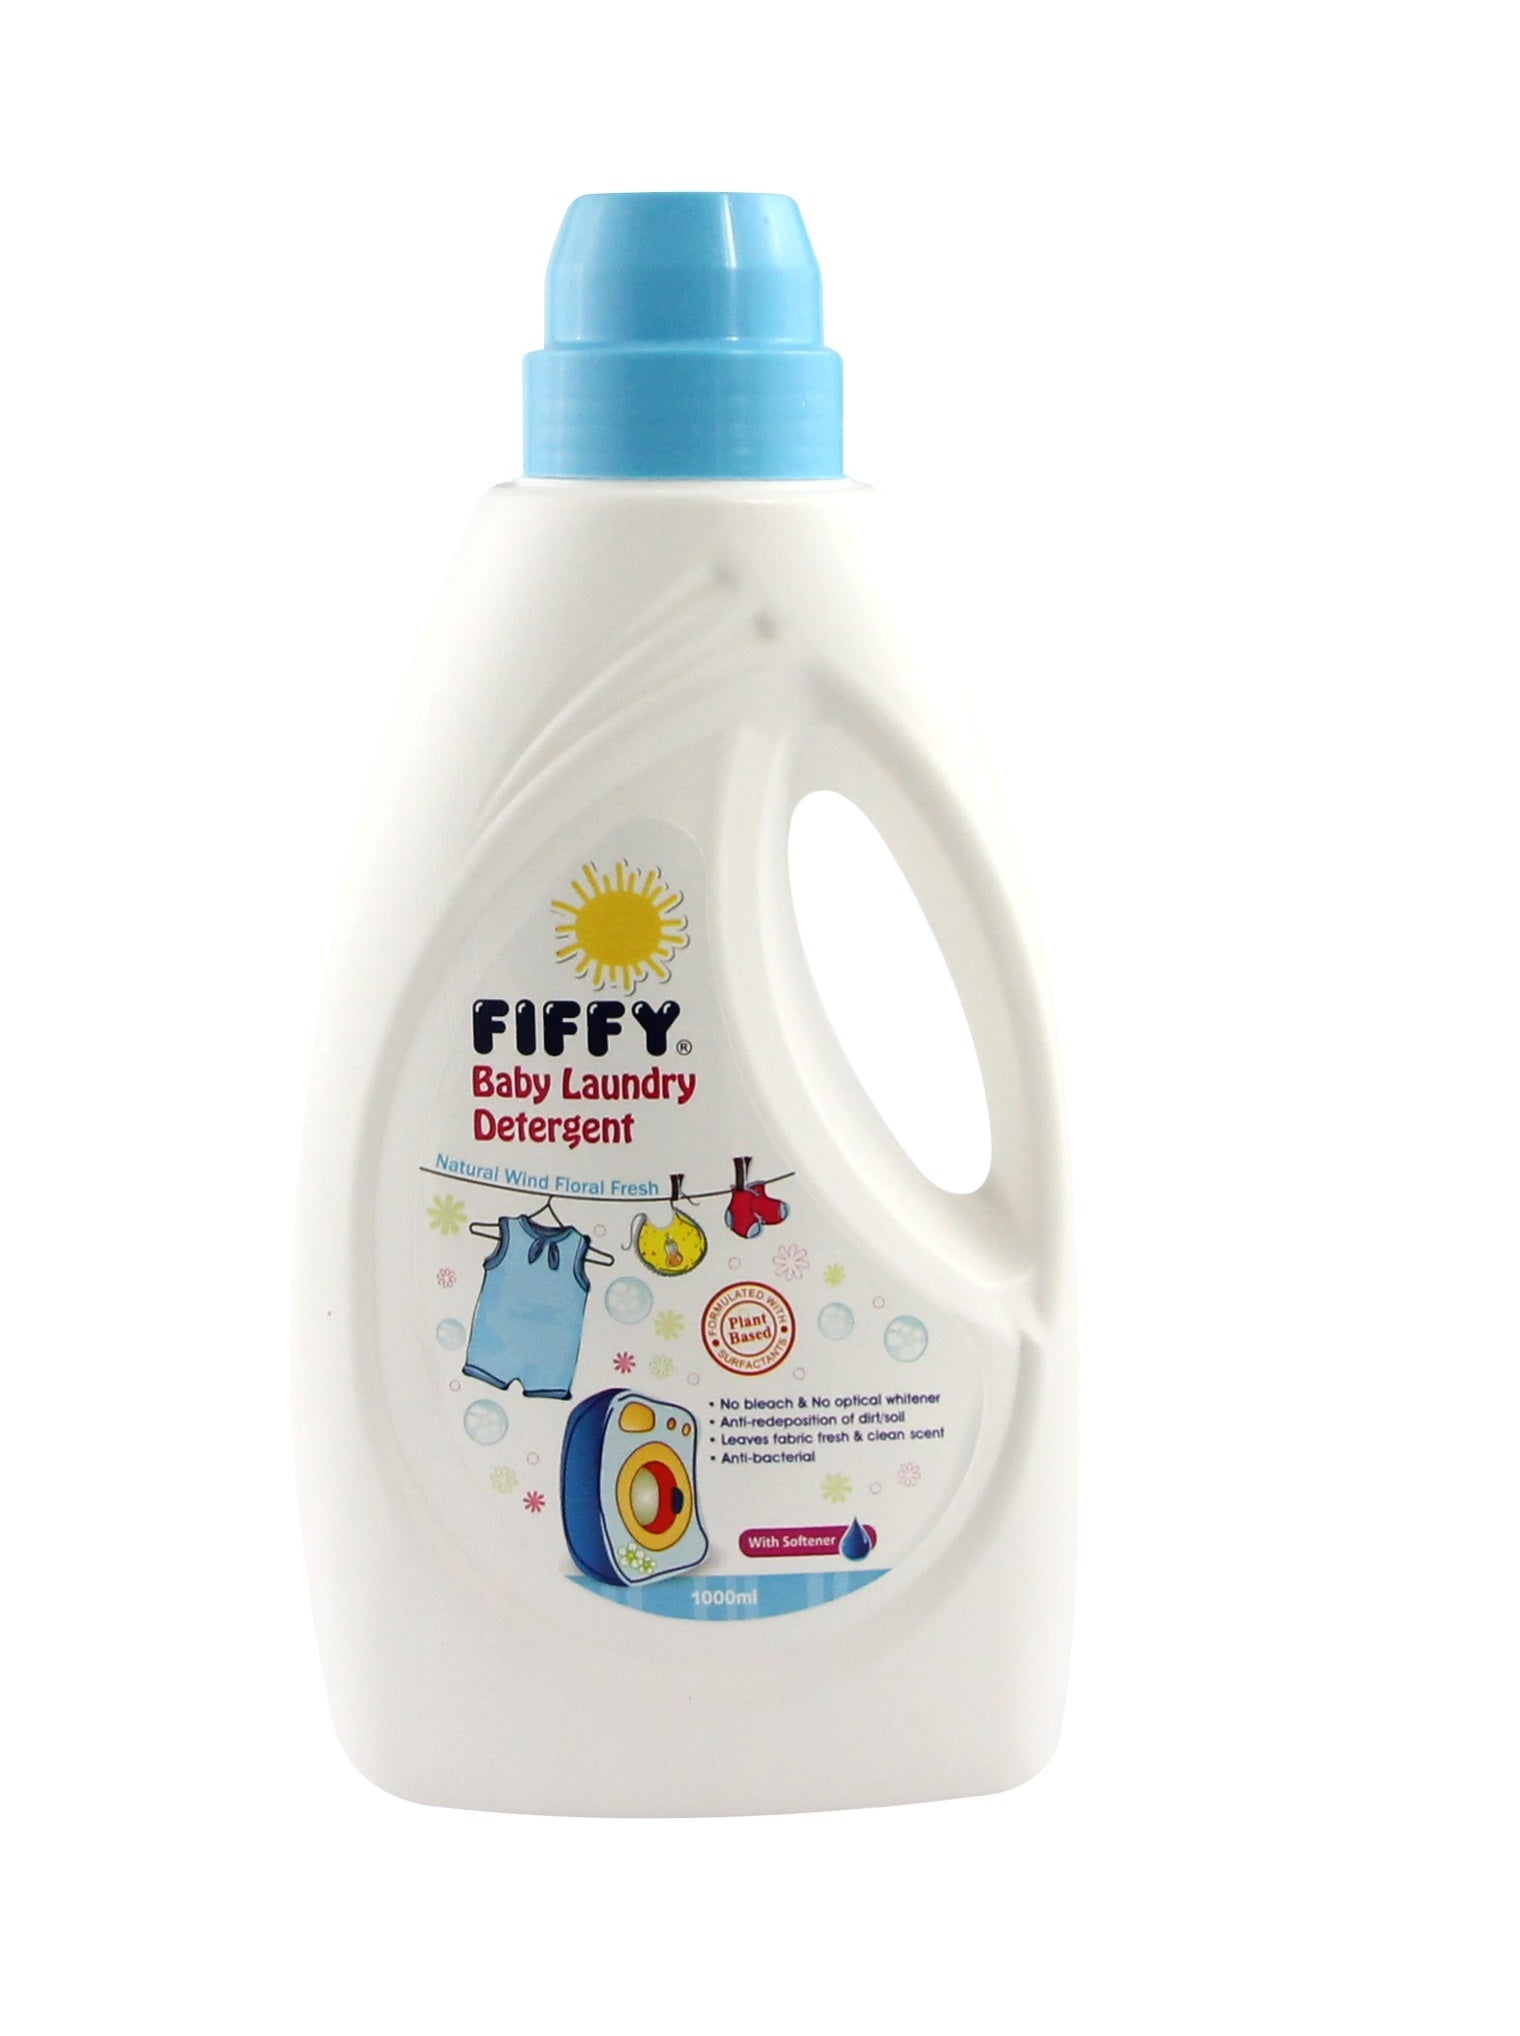 FIFFY Baby Laundry Detergent with Softener 1000ml / Refill 800ml